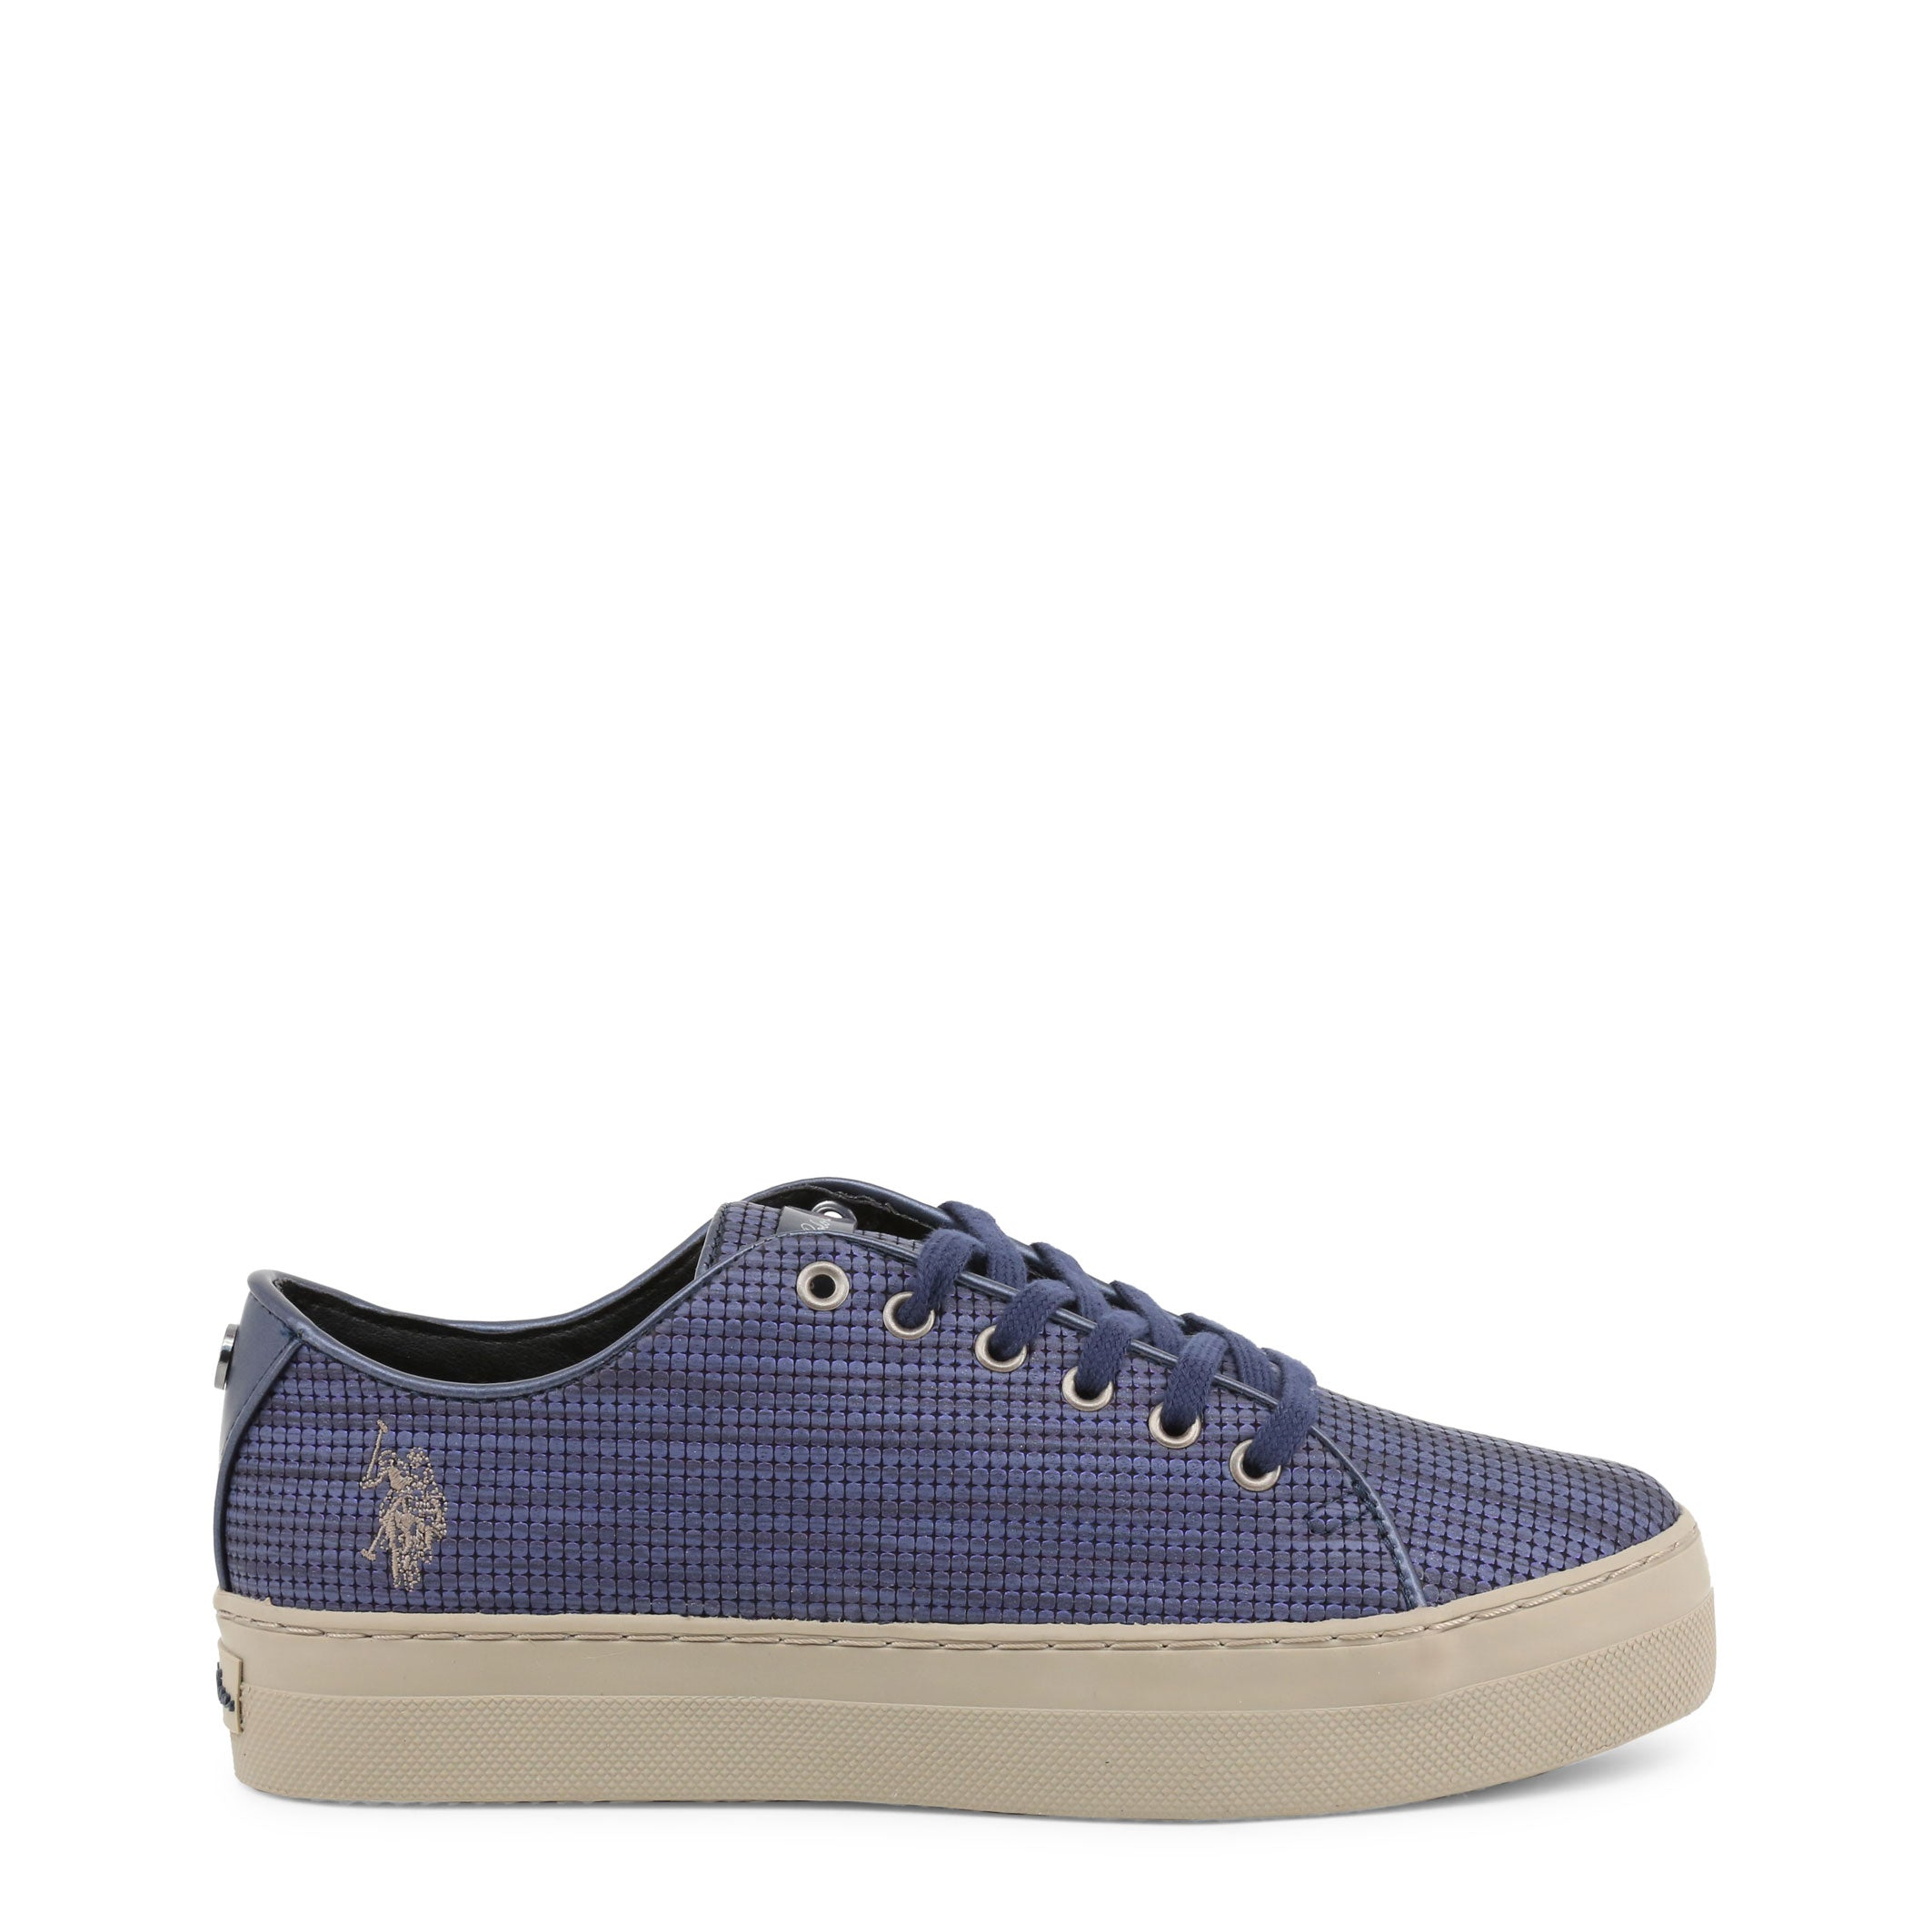 U.S. Polo - TRIXY4139W8 - Women's Sneakers